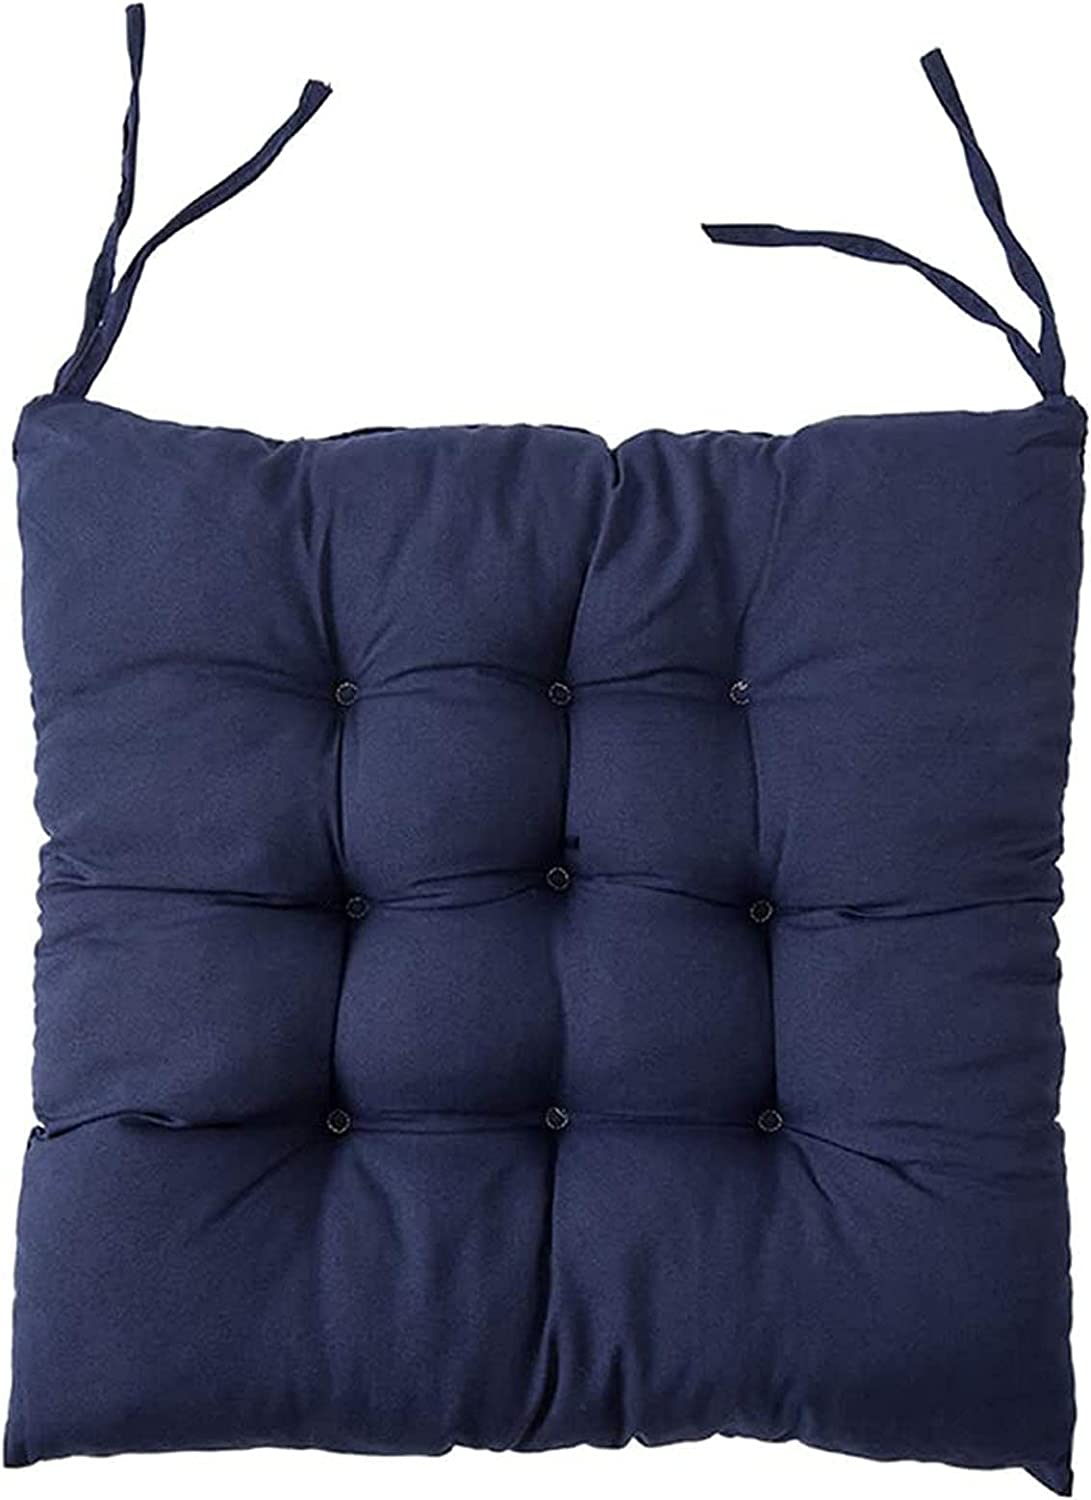 QIAOH Non-Slip mart Chair Cushions Set of 1 latest Cushion Dining for